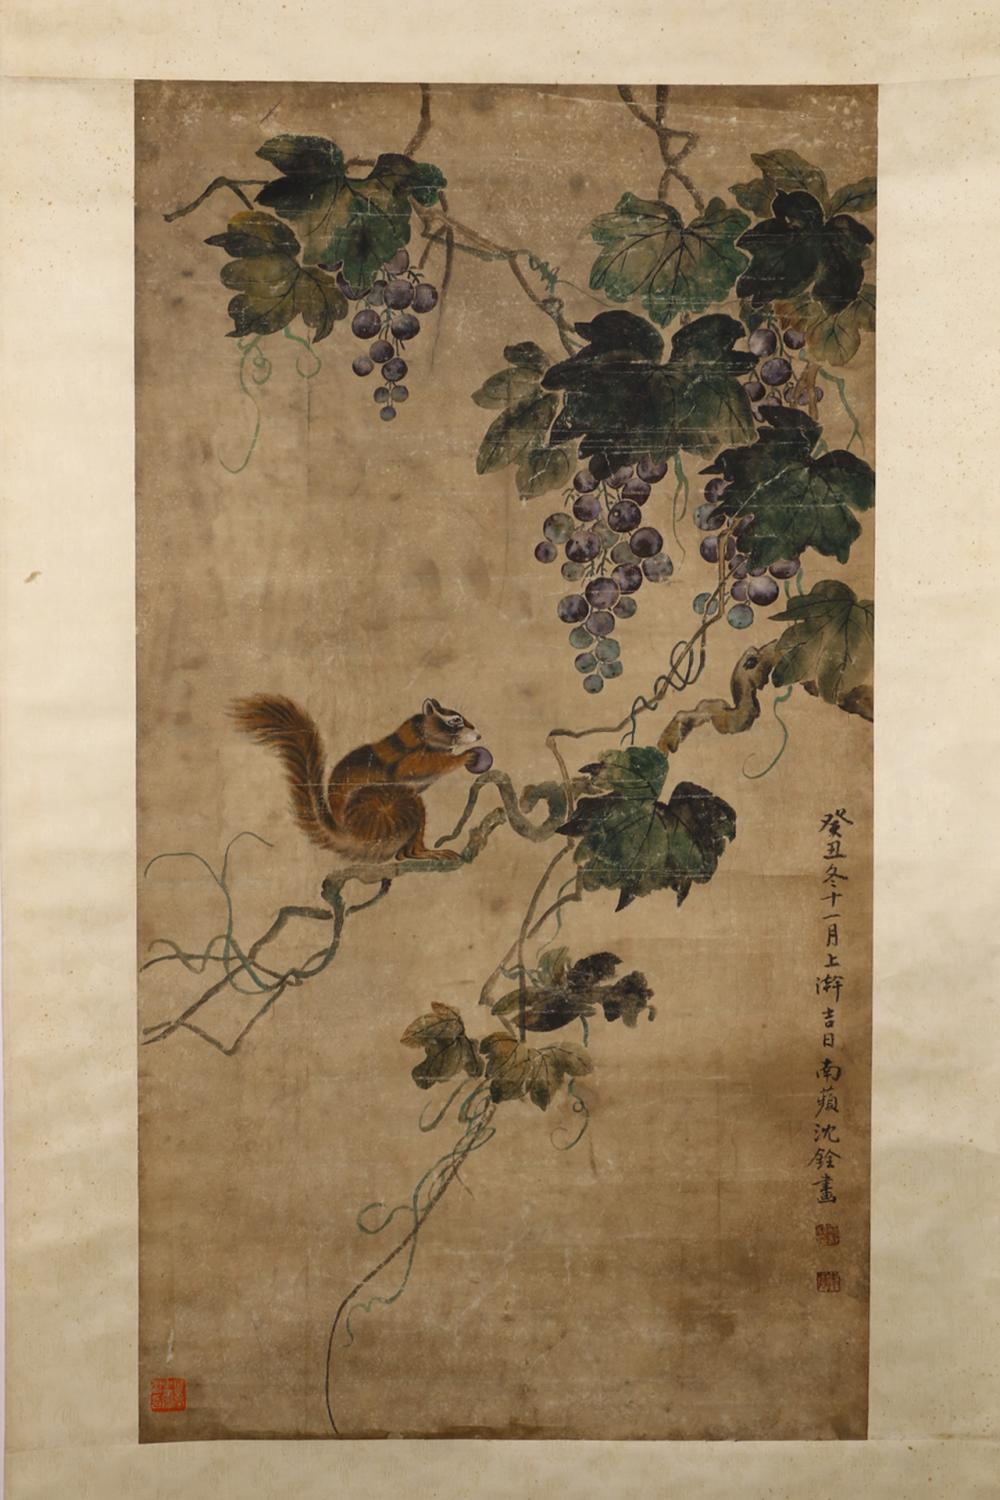 CHINESE PAINTING OF A SQUIRREL AND GRAPES